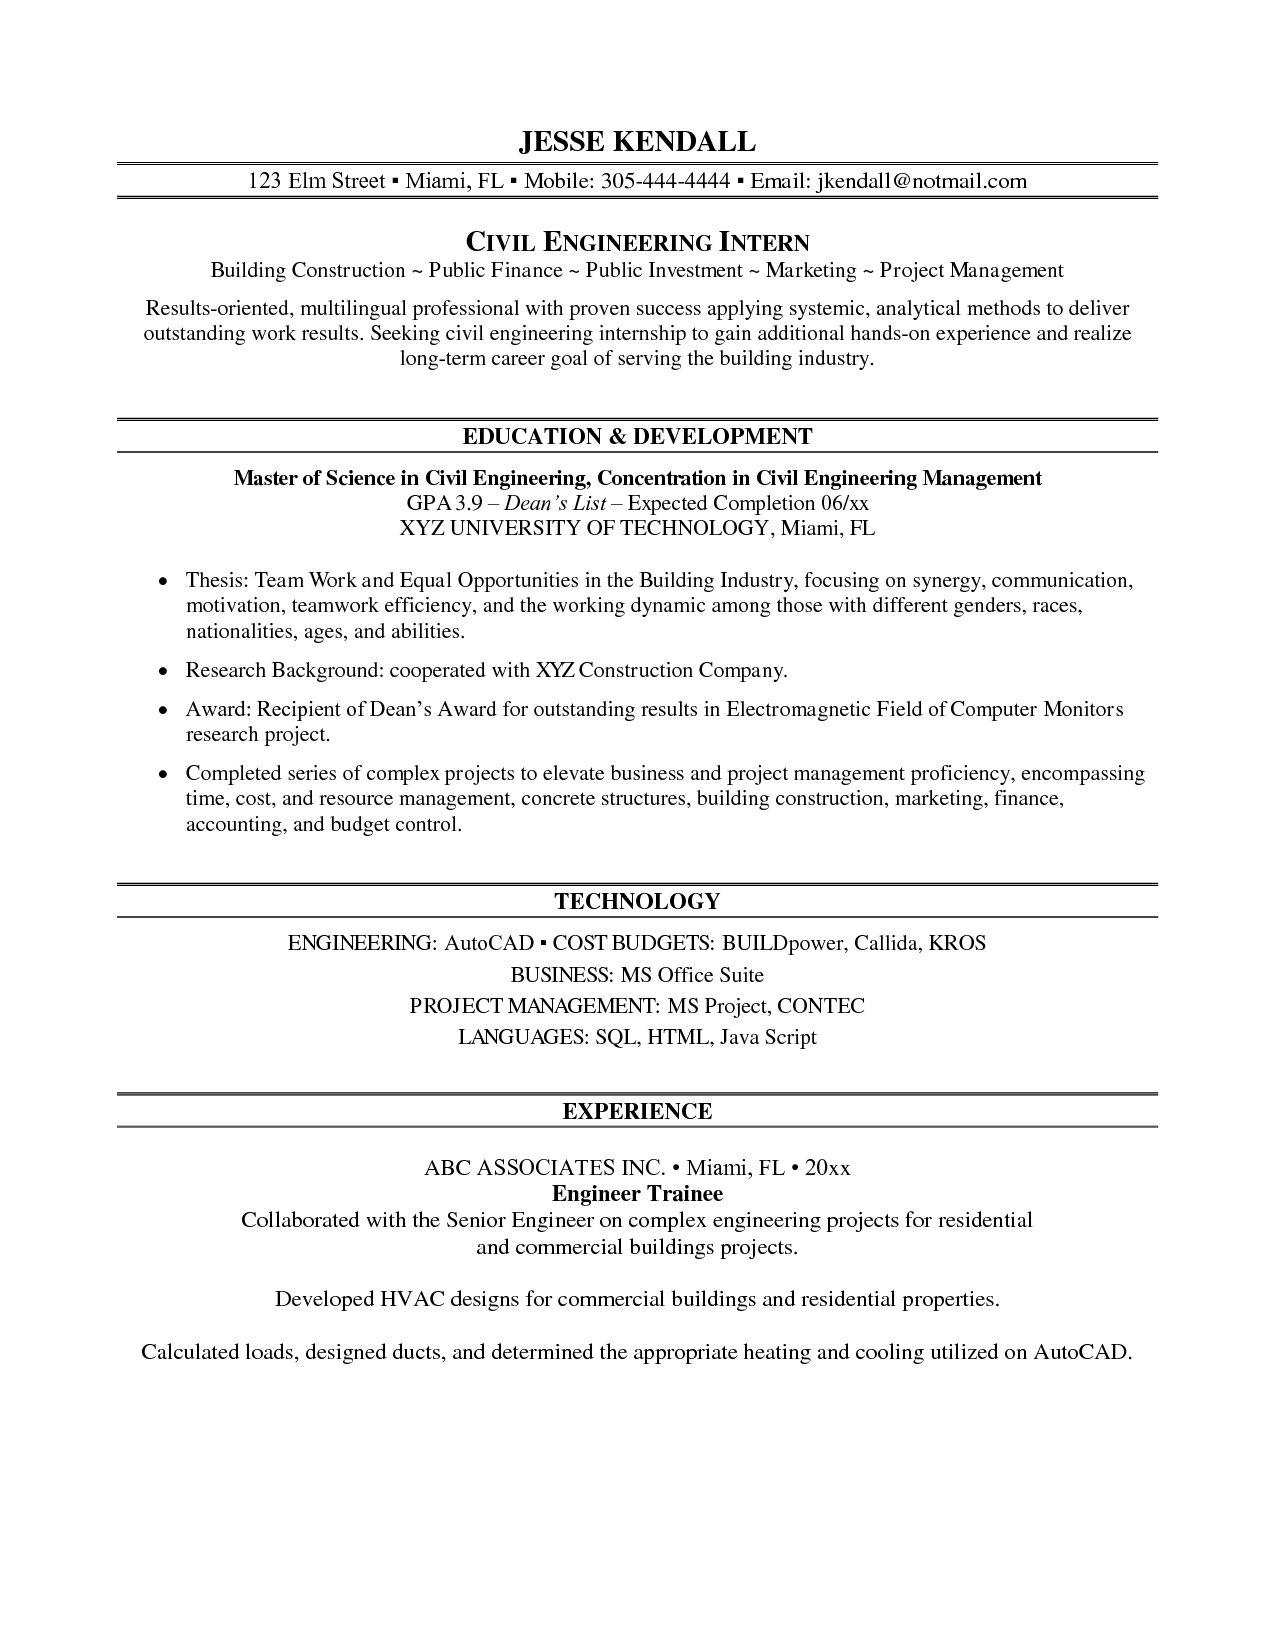 A Perfect Resume Example Internship On Resume Best Template Collection  Httpwww